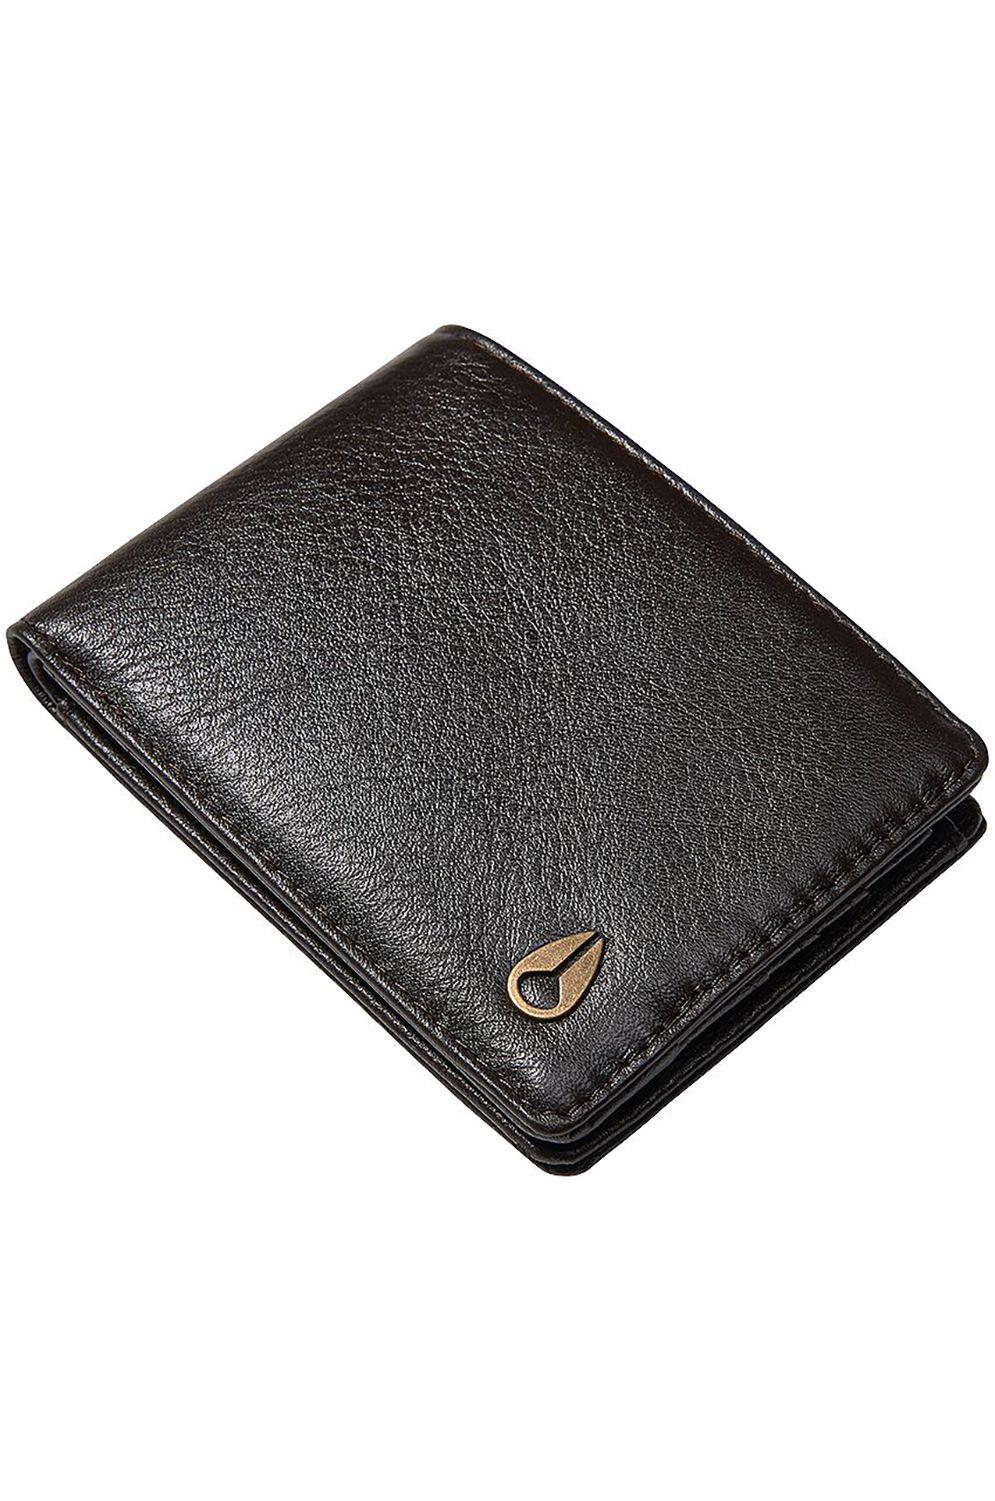 Carteira Nixon HEROS BI-FOLD Brown